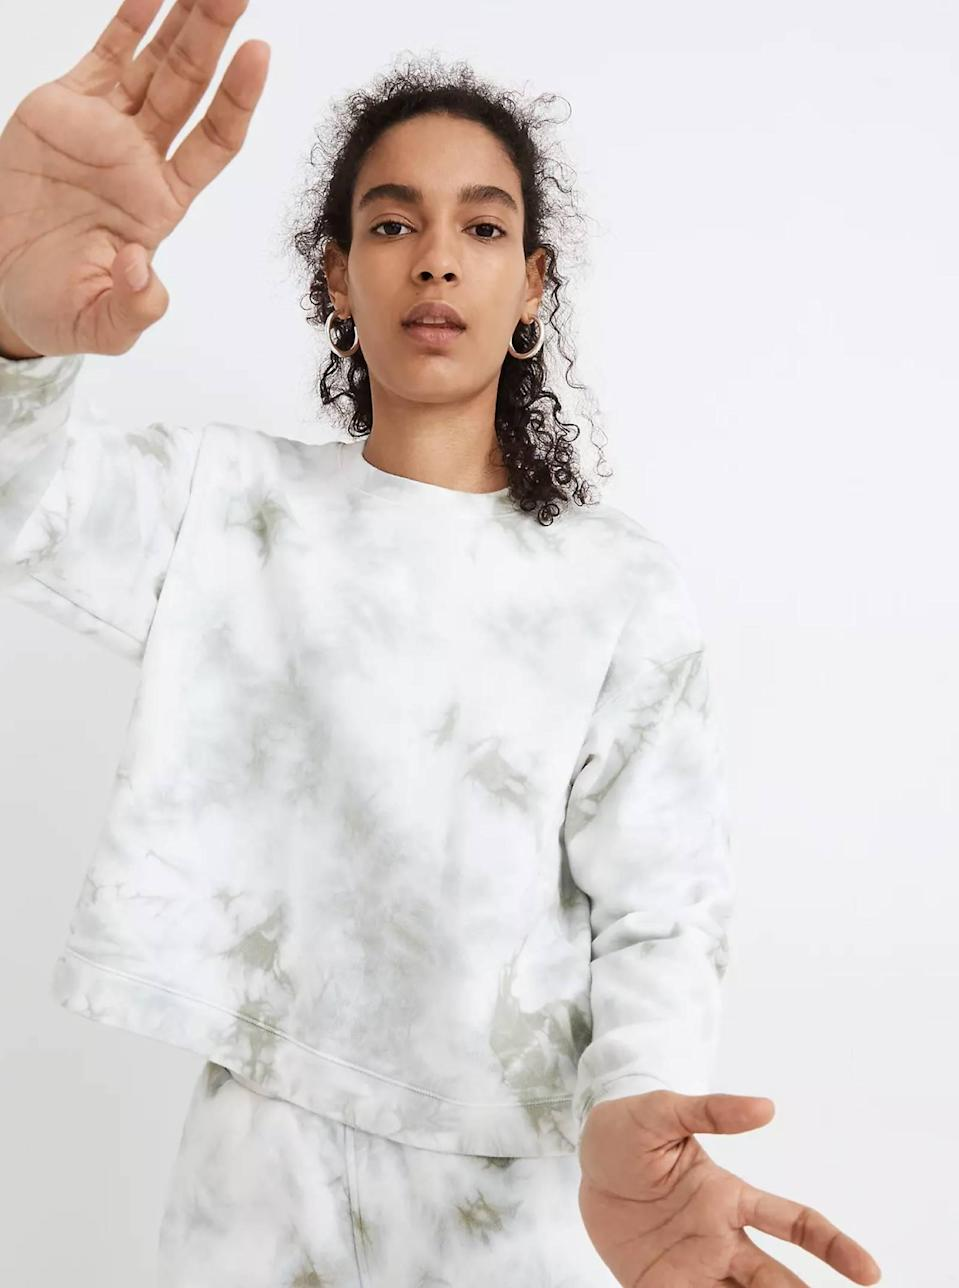 """When the evenings cool down, you'd better have yourself a reliable cozy sweatshirt you can throw on. This tie-dye one fits the bill. $79.5, Madewell. <a href=""""https://www.madewell.com/tie-dye-%28re%29sourced-cotton-swing-sweatshirt-MA899.html?"""" rel=""""nofollow noopener"""" target=""""_blank"""" data-ylk=""""slk:Get it now!"""" class=""""link rapid-noclick-resp"""">Get it now!</a>"""